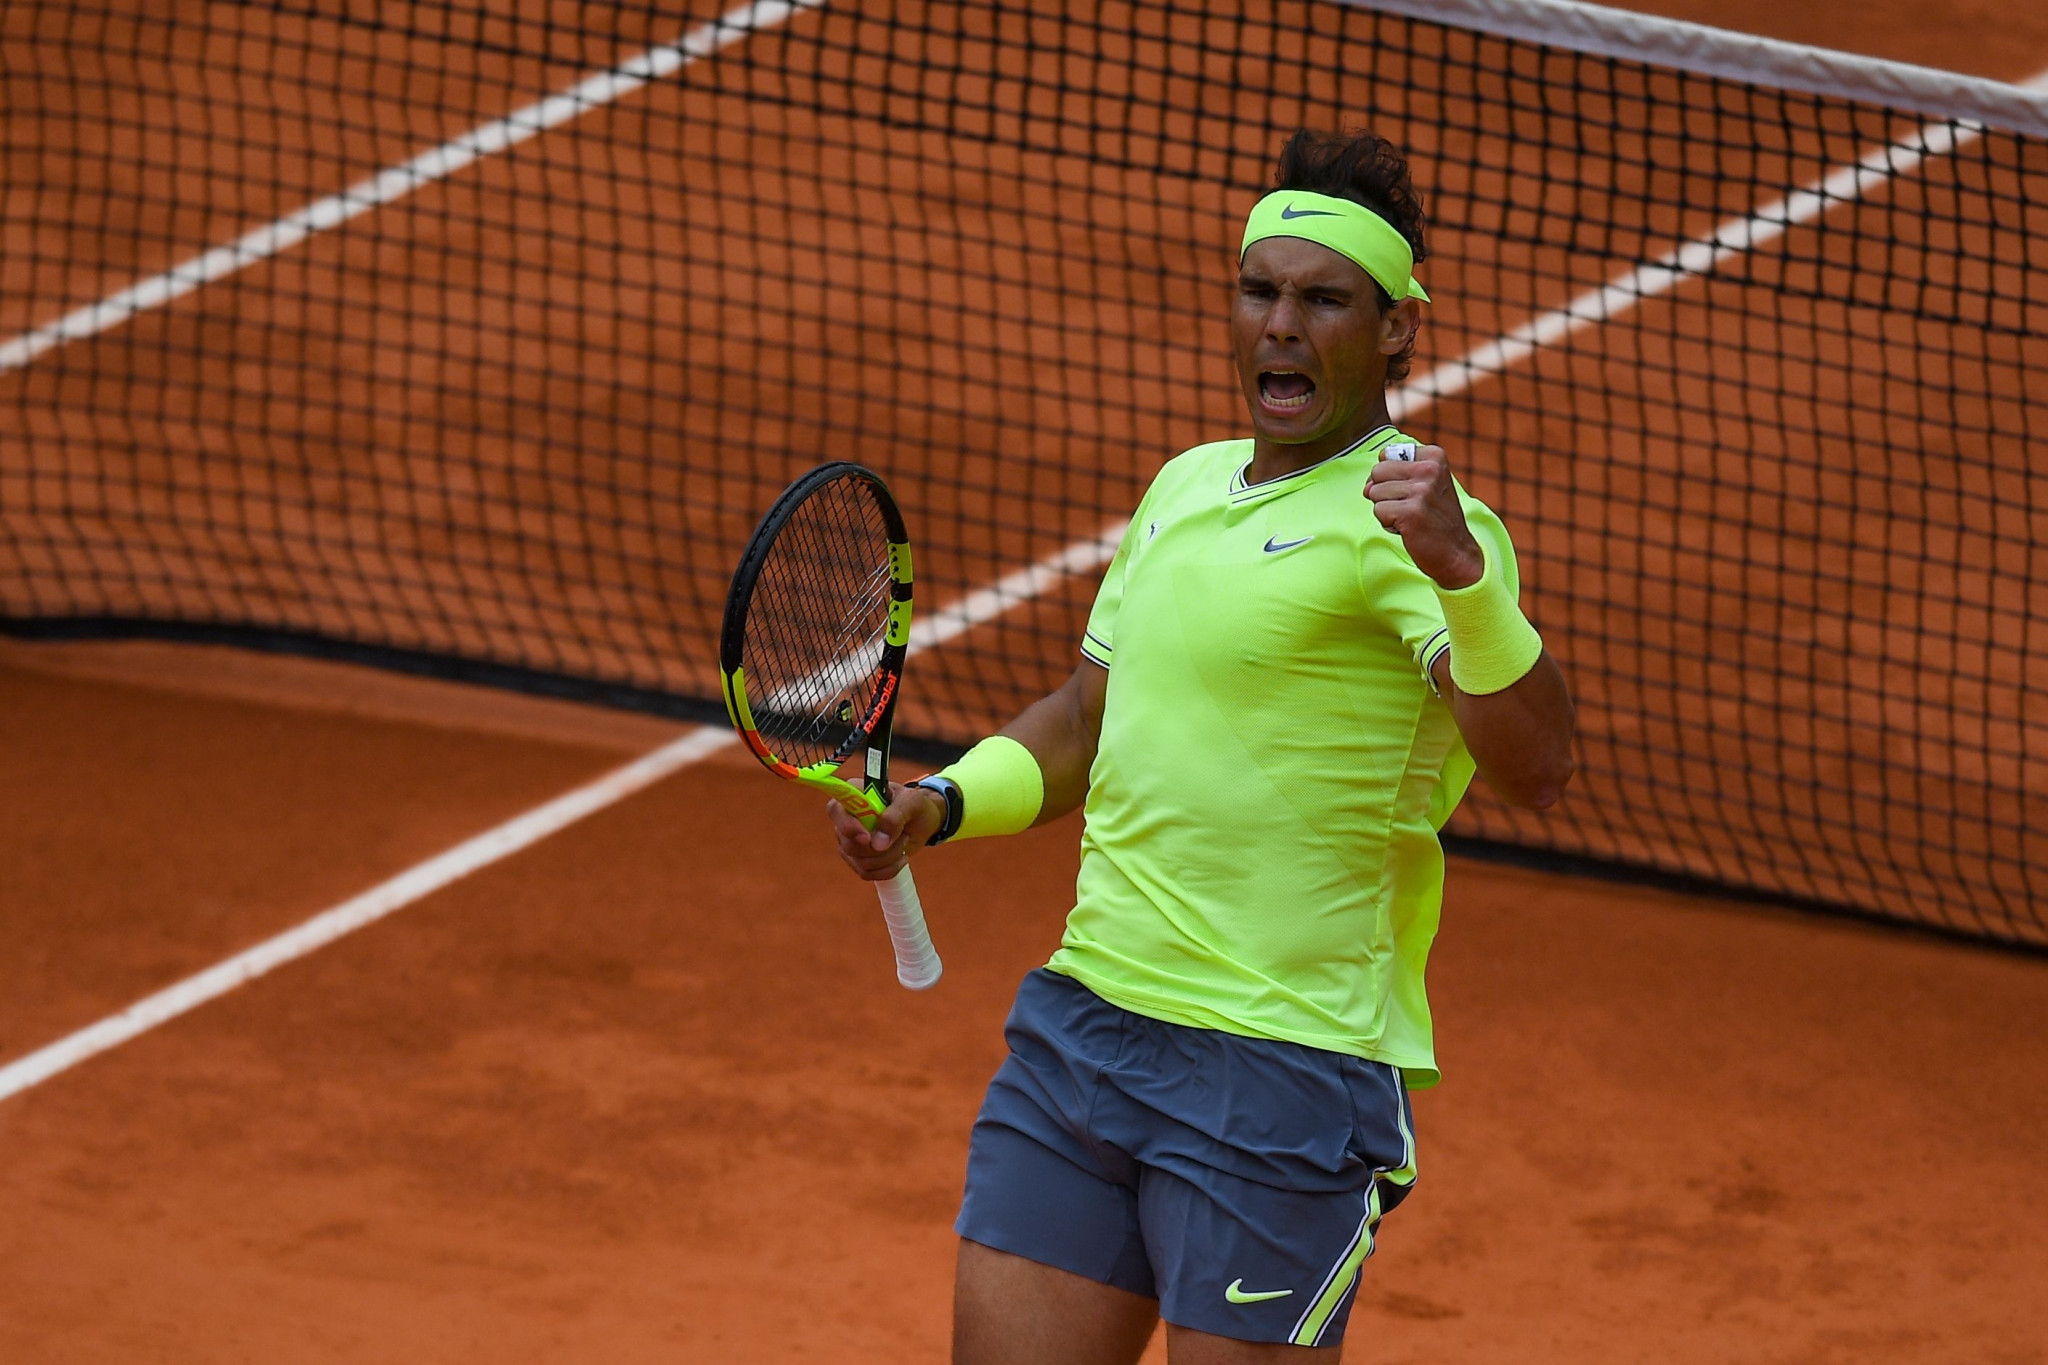 Nadal sweeps aside Federer to book 12th French Open final berth